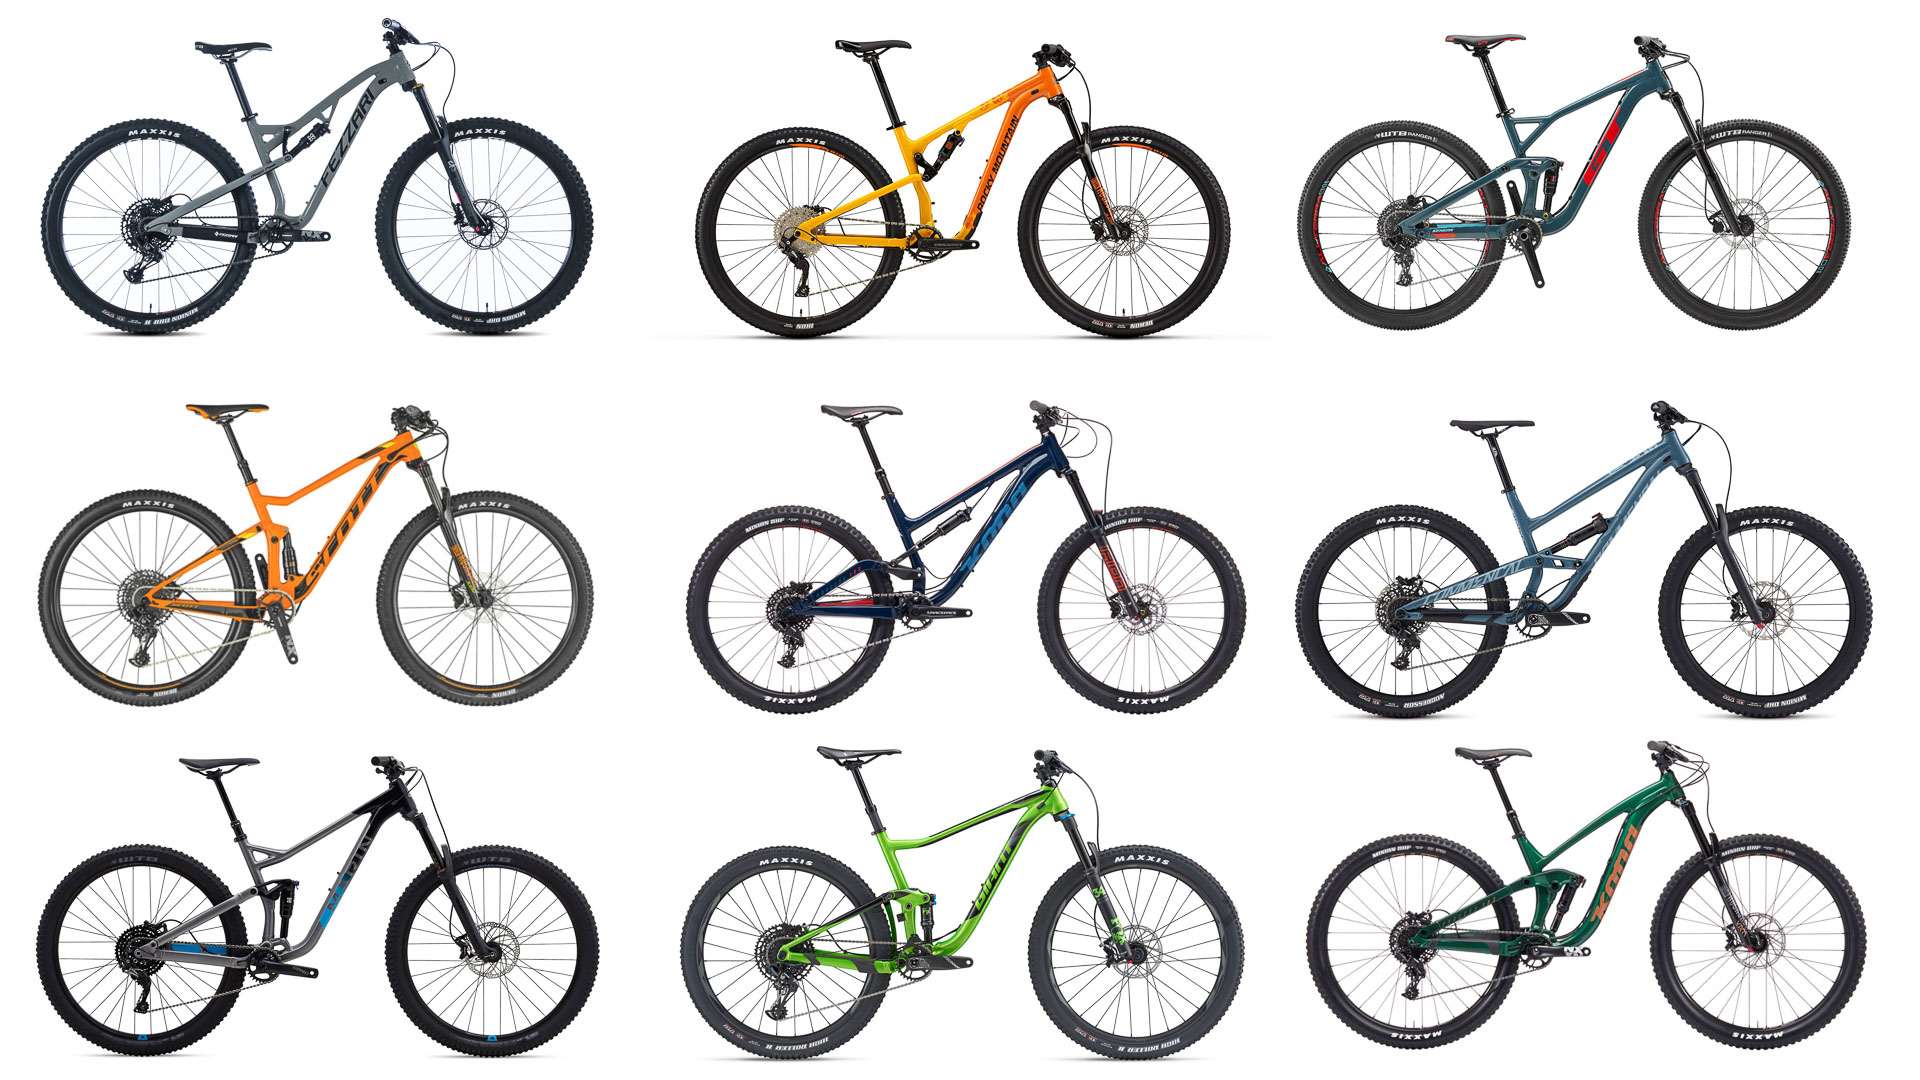 Dual Suspension Mountain Bikes With Free 14 Day Test Ride >> The Best Mountain Bikes Under 2 500 Bike Magazine